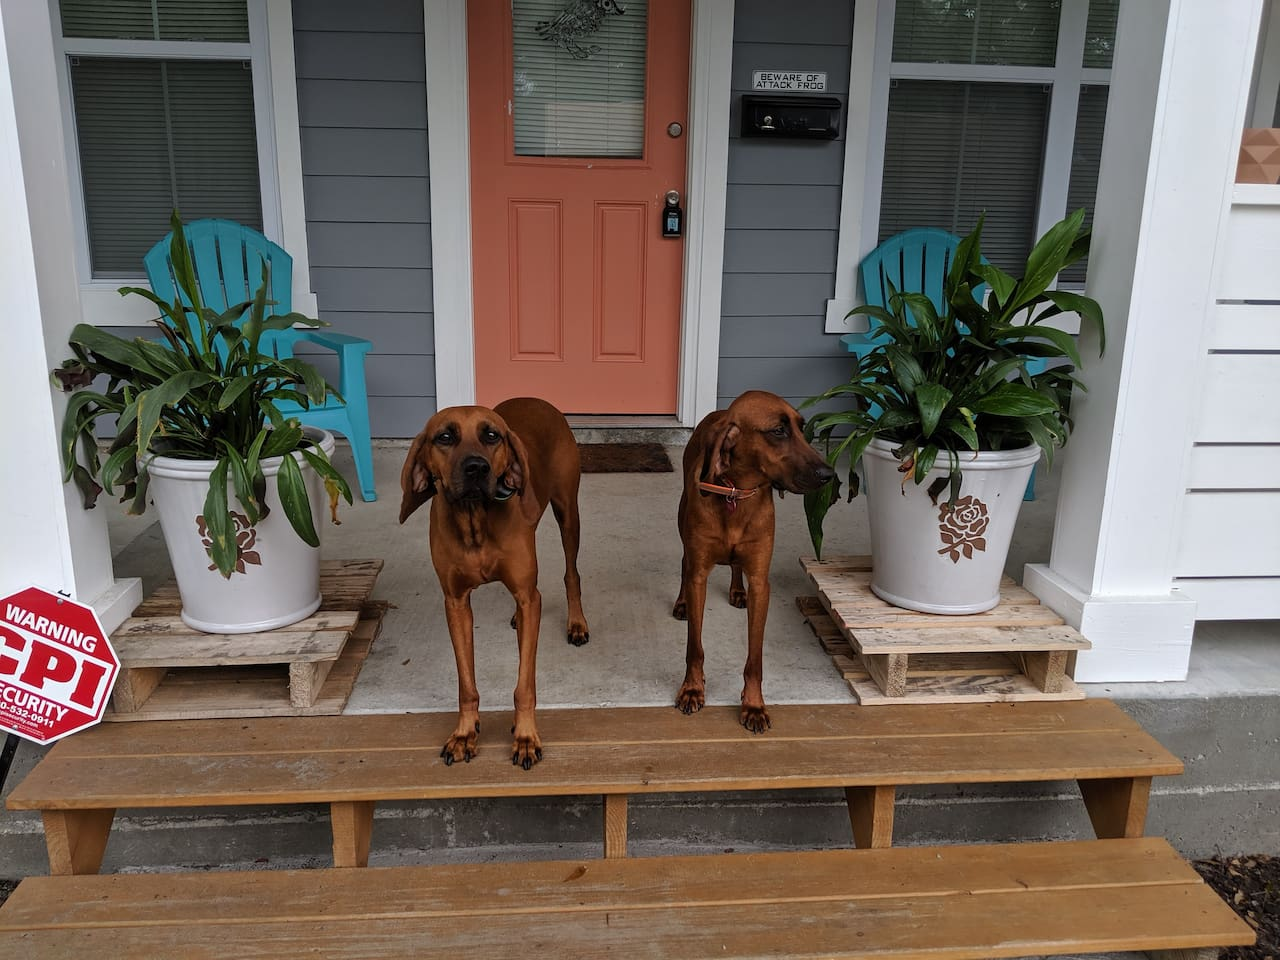 Welcome to our home! These are our pups Daisy and Penny! They stay downstairs at all times and are super friendly when ever you're coming or going